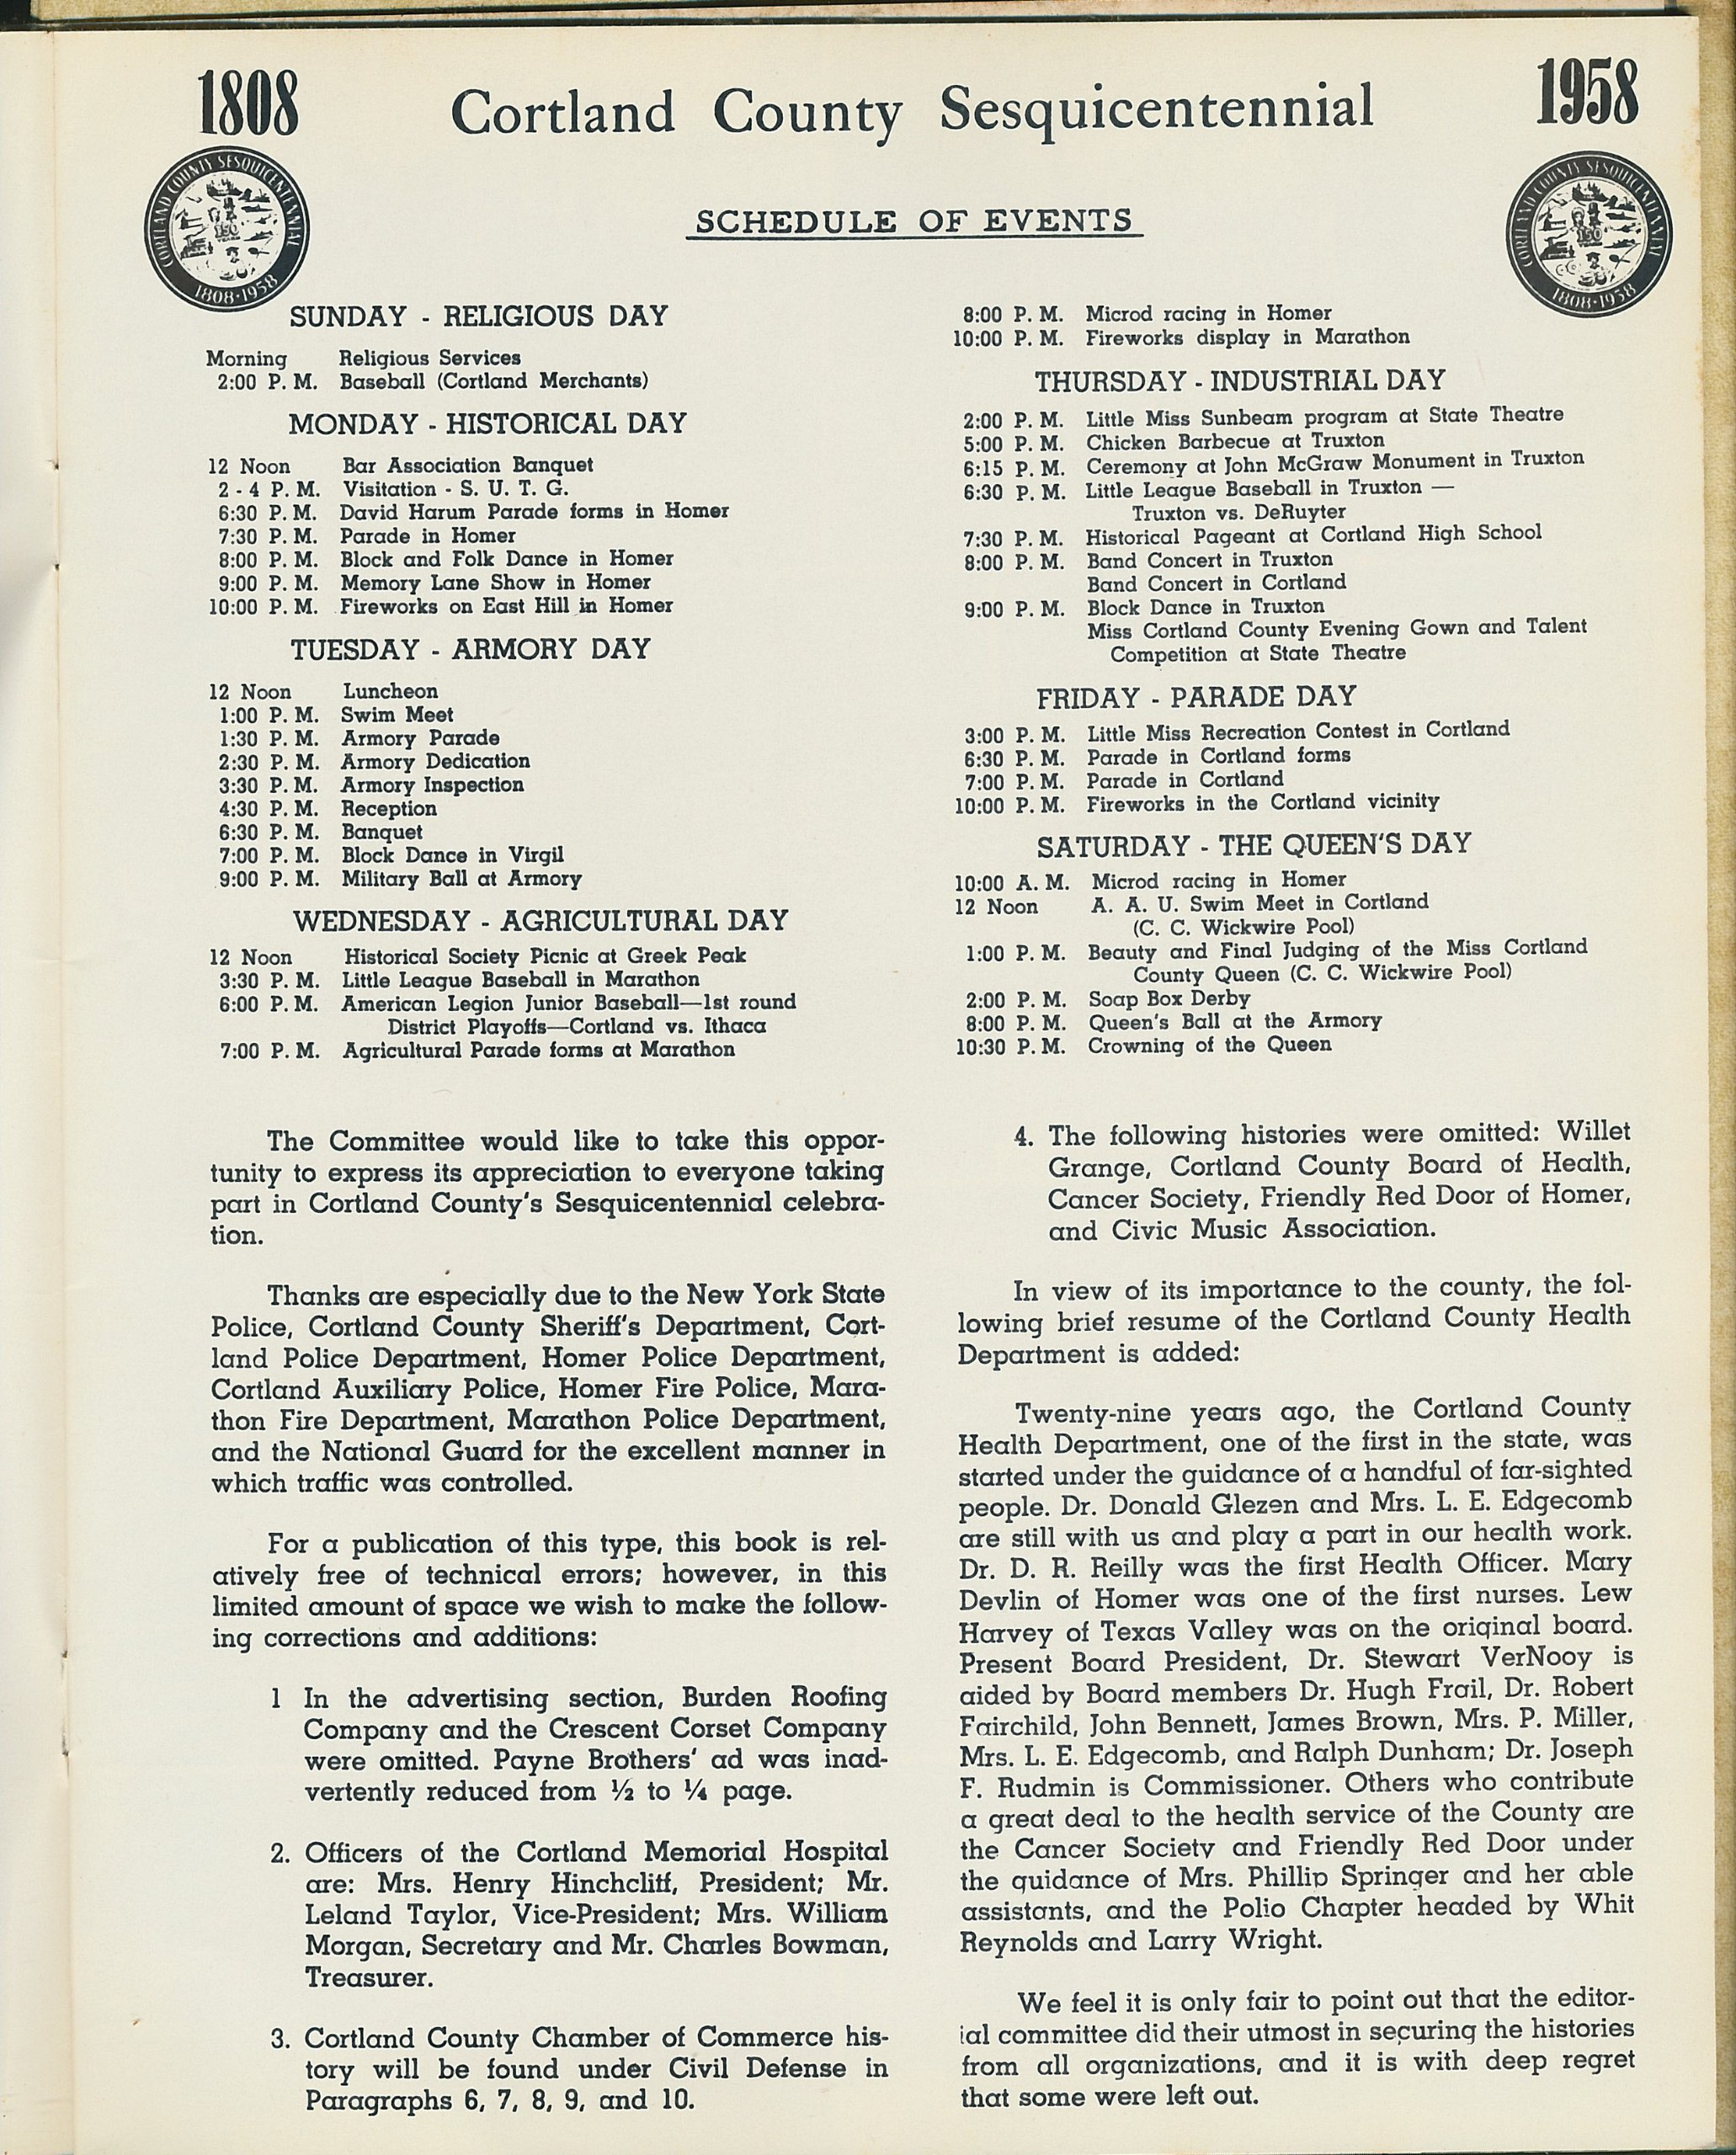 Page from Souvenir Booklet Sesquicentennial